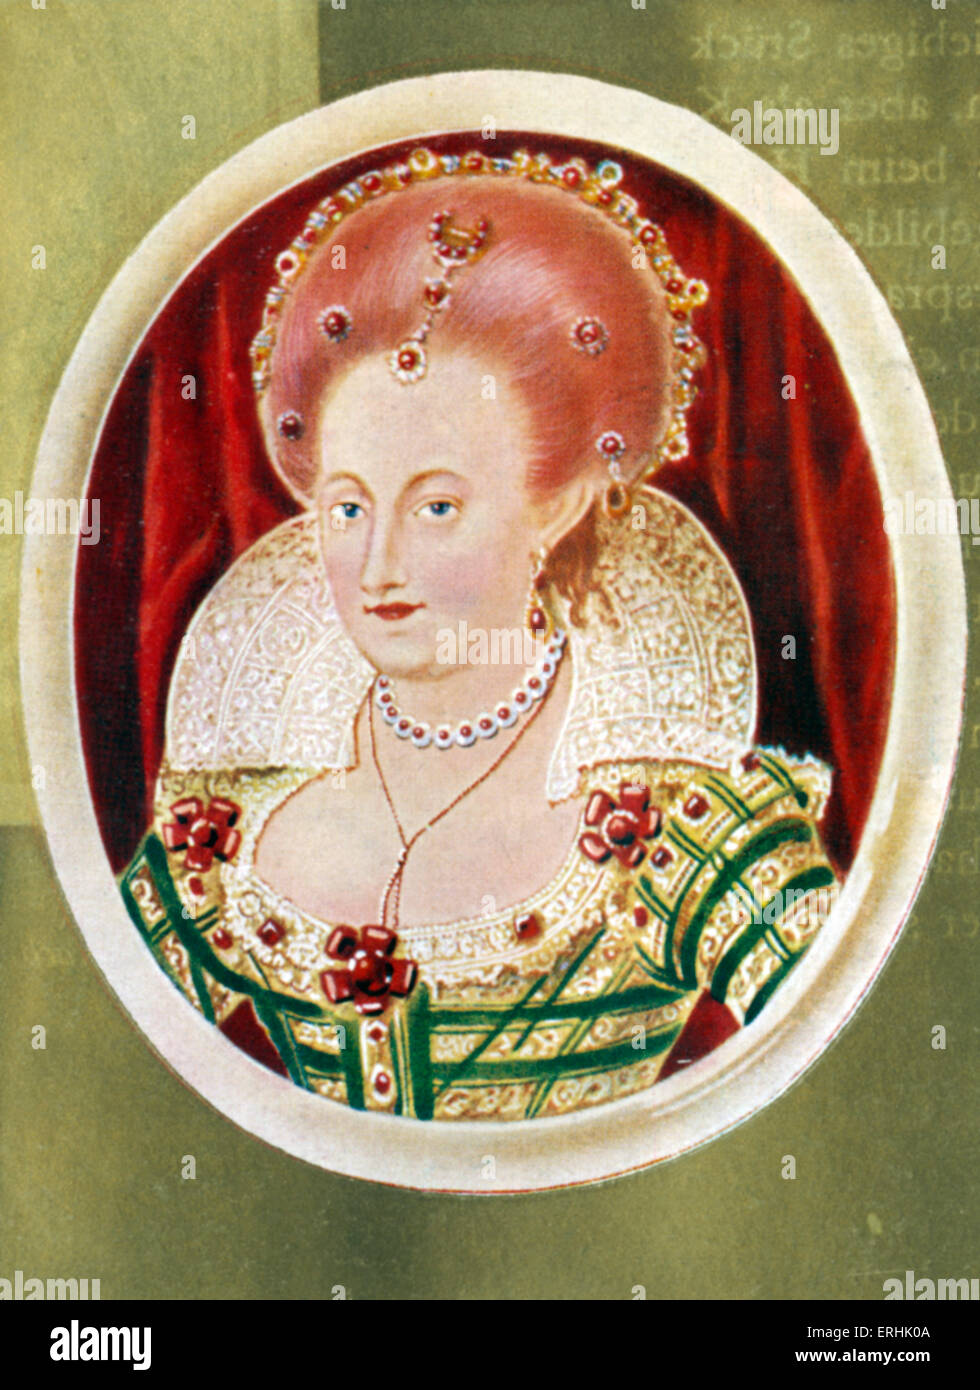 Anne of Denmark. Potrait of the queen consort of King James I of England and VI of Scotland. 14 October 1574 –  - Stock Image